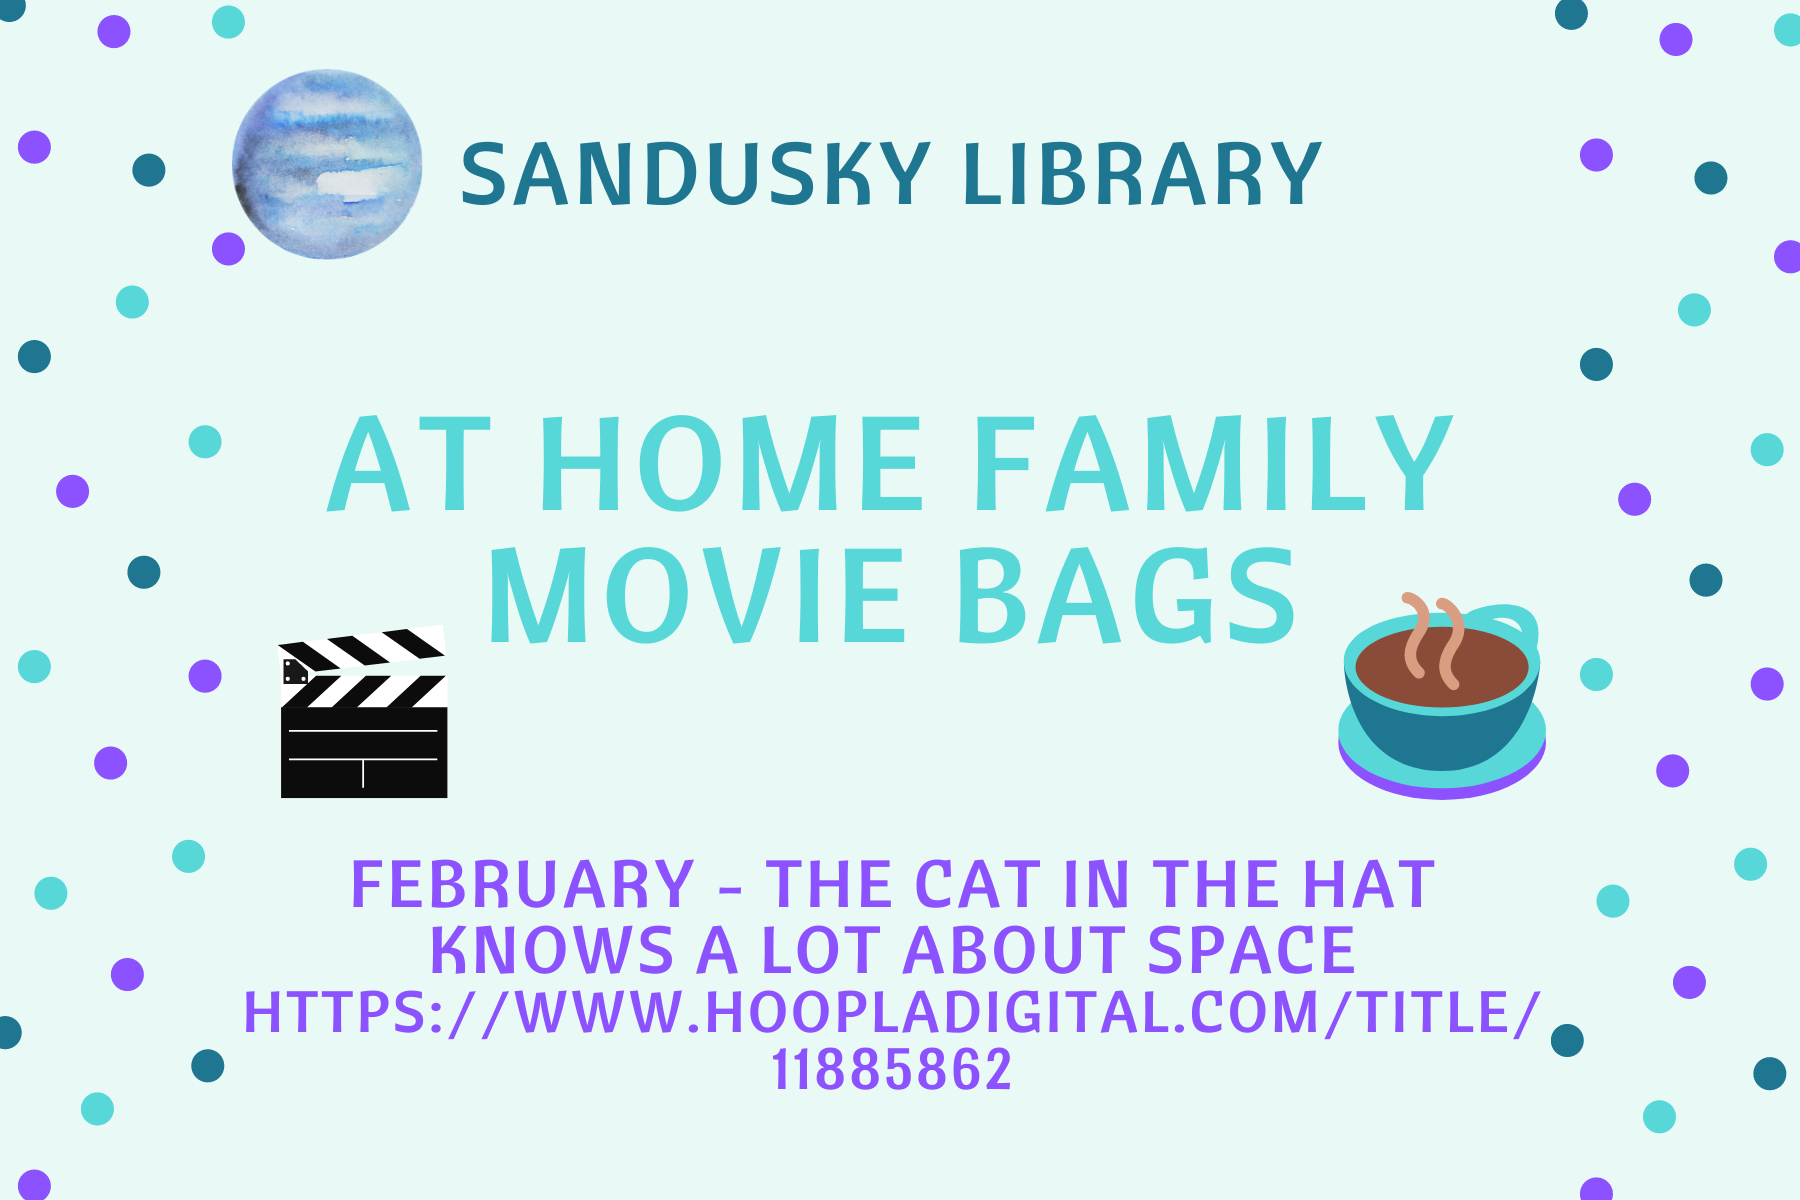 At Home Family Movie Bags - February